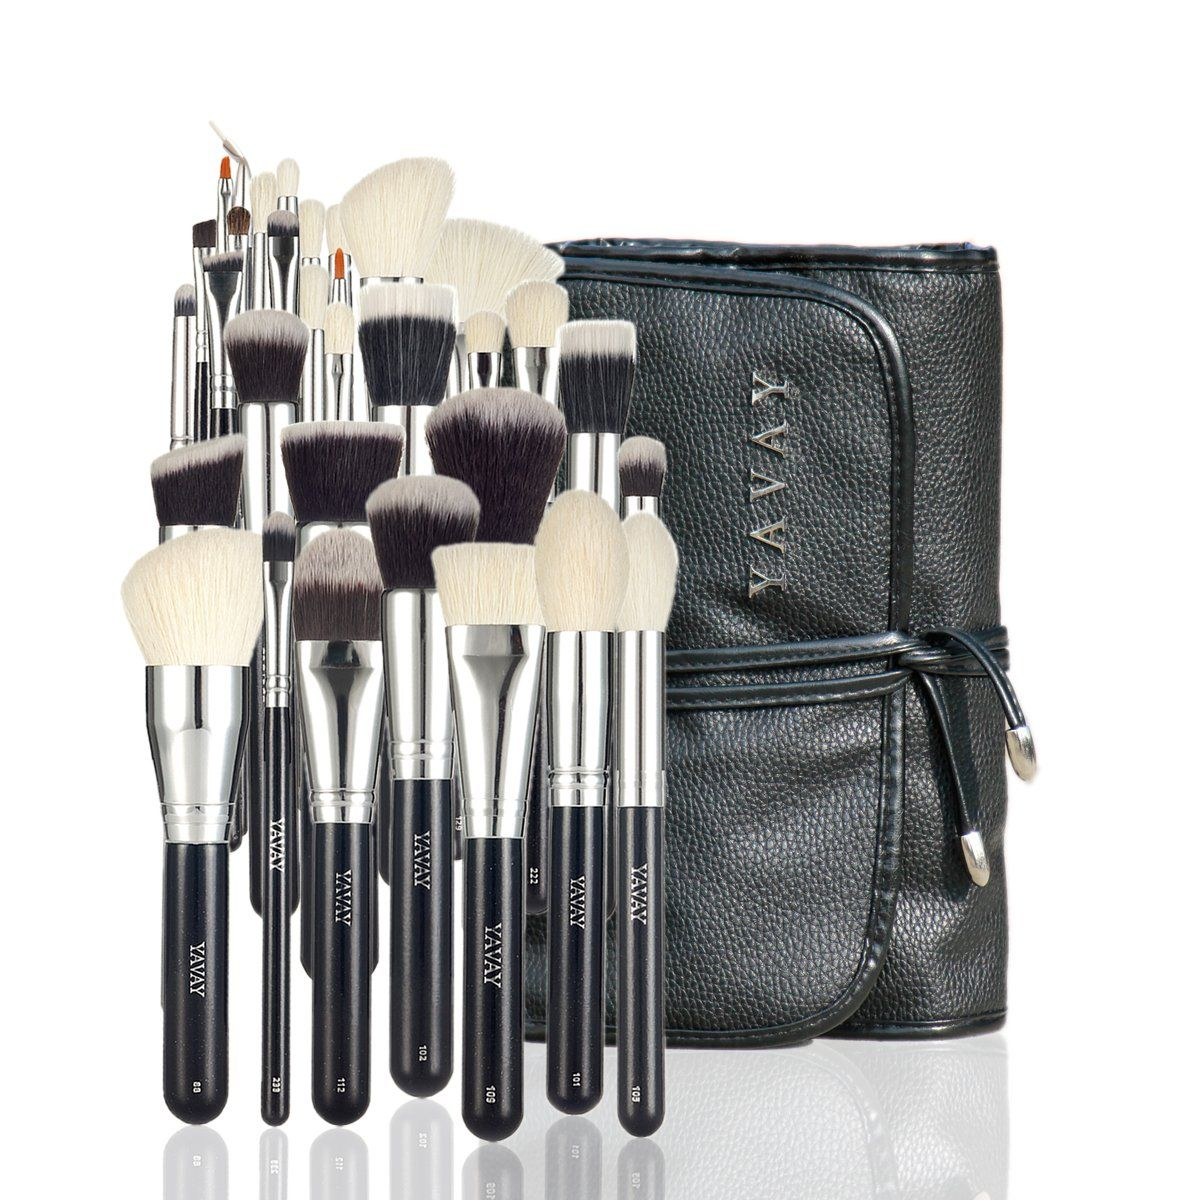 About the product professional makeup brushes makeup brush